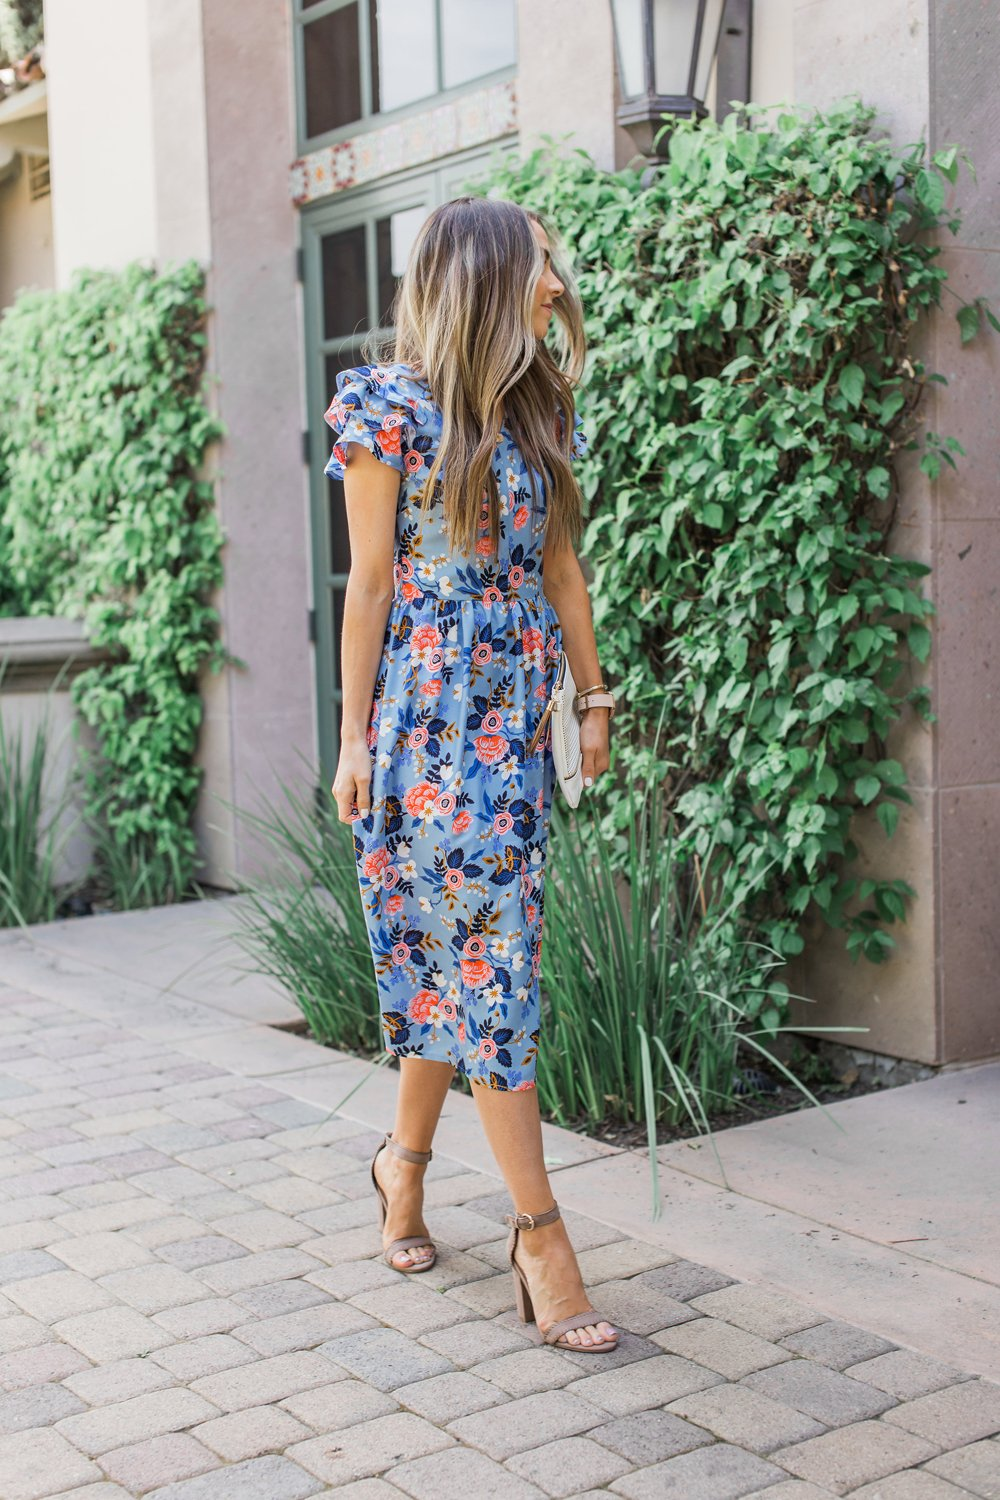 Merrick's Art Floral Midi Dress with Fabric from Rifle Paper Co